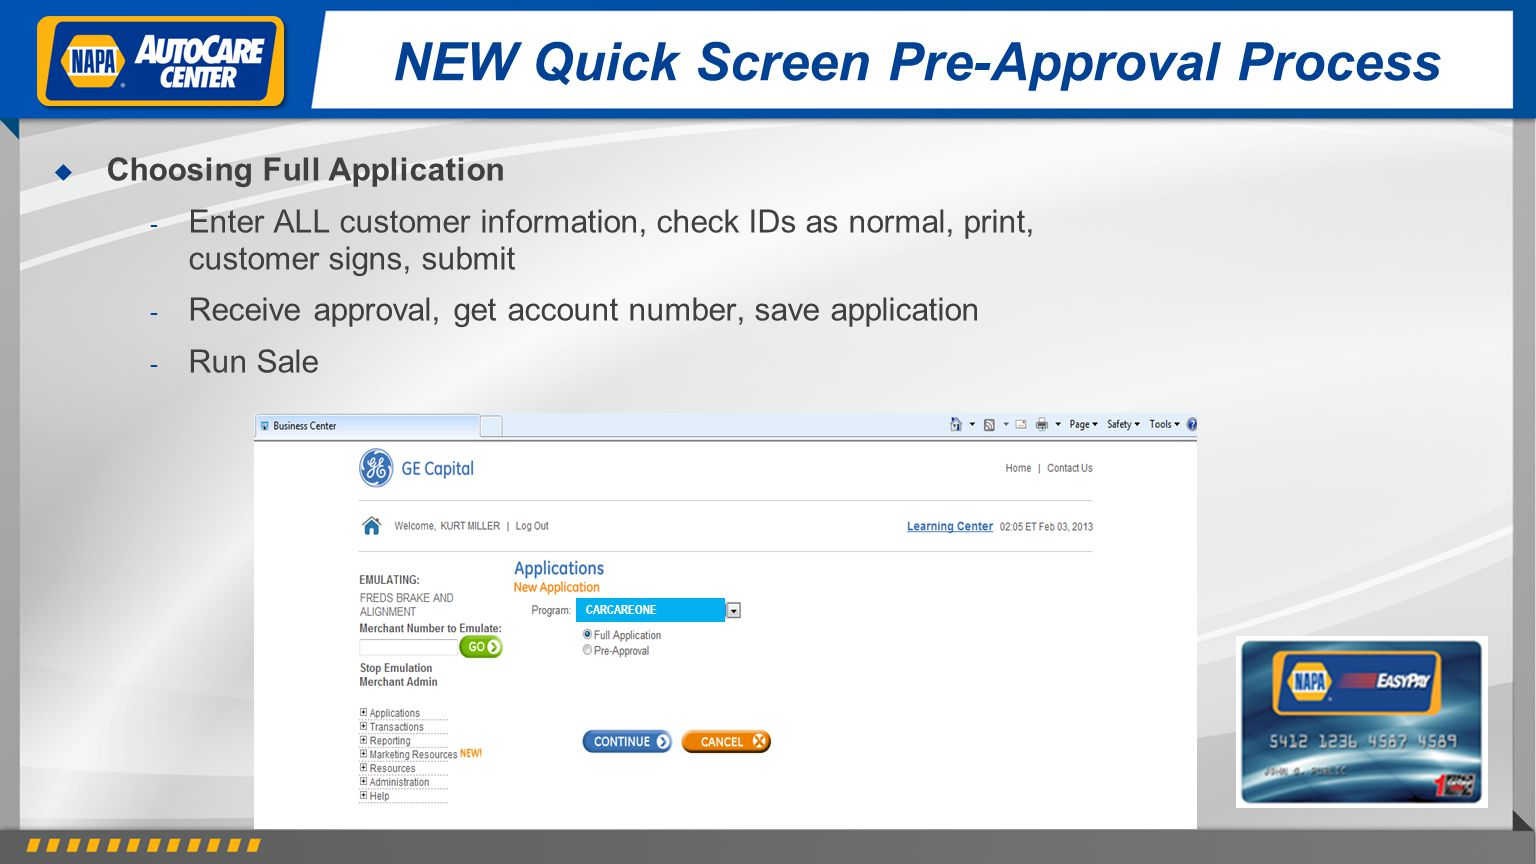 NEW Quick Screen Pre-Approval Process